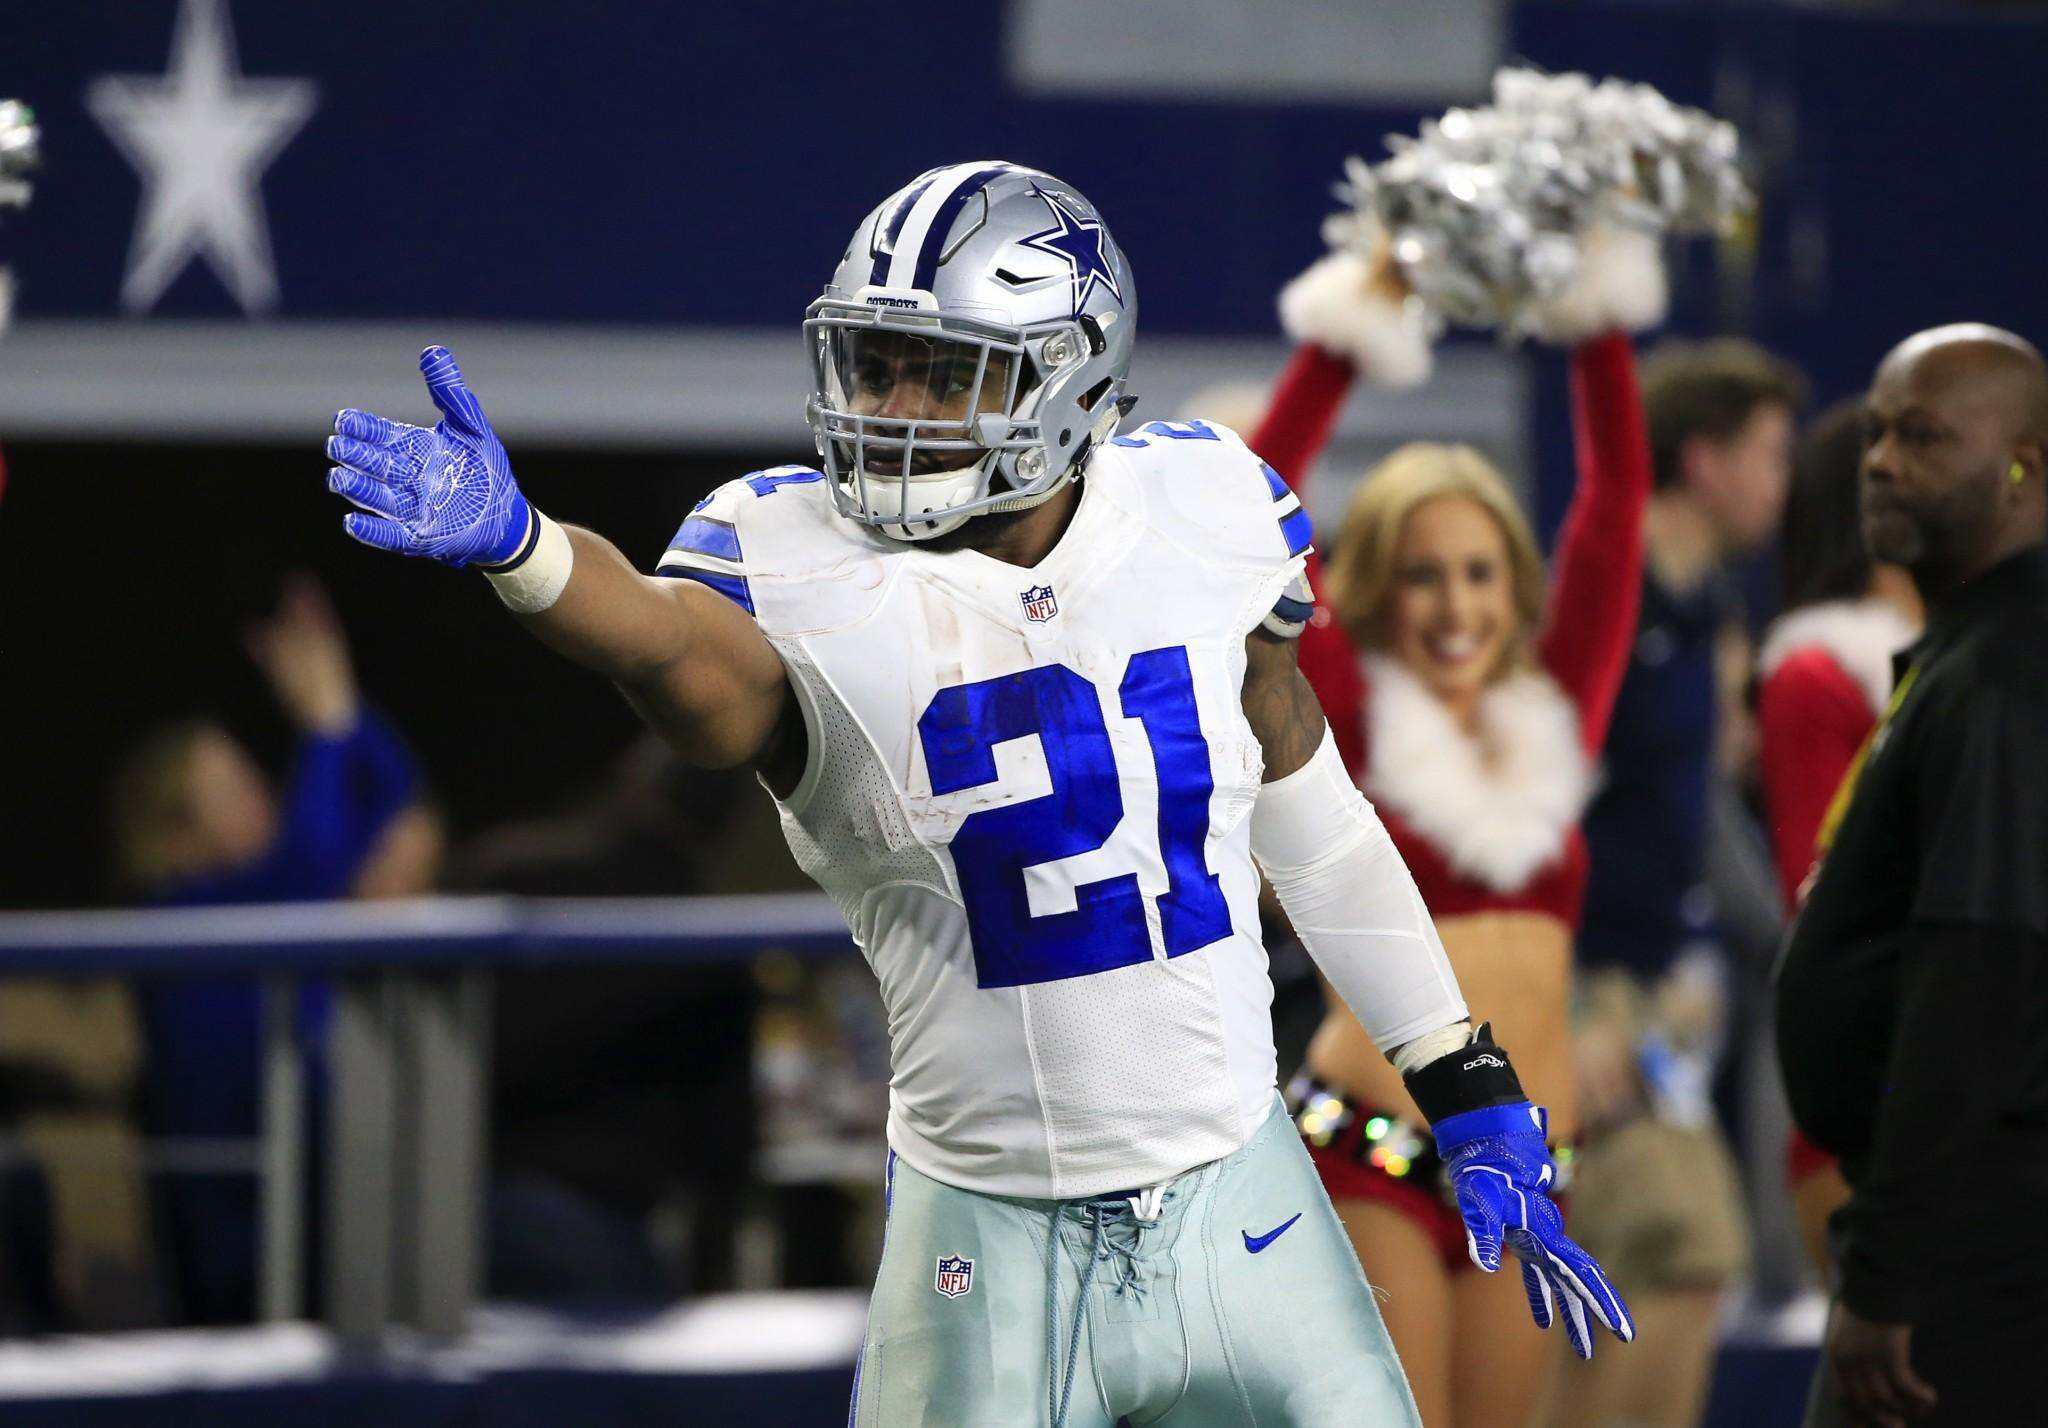 Ezekiel Elliott TRO Granted, Will Play While Process Continues